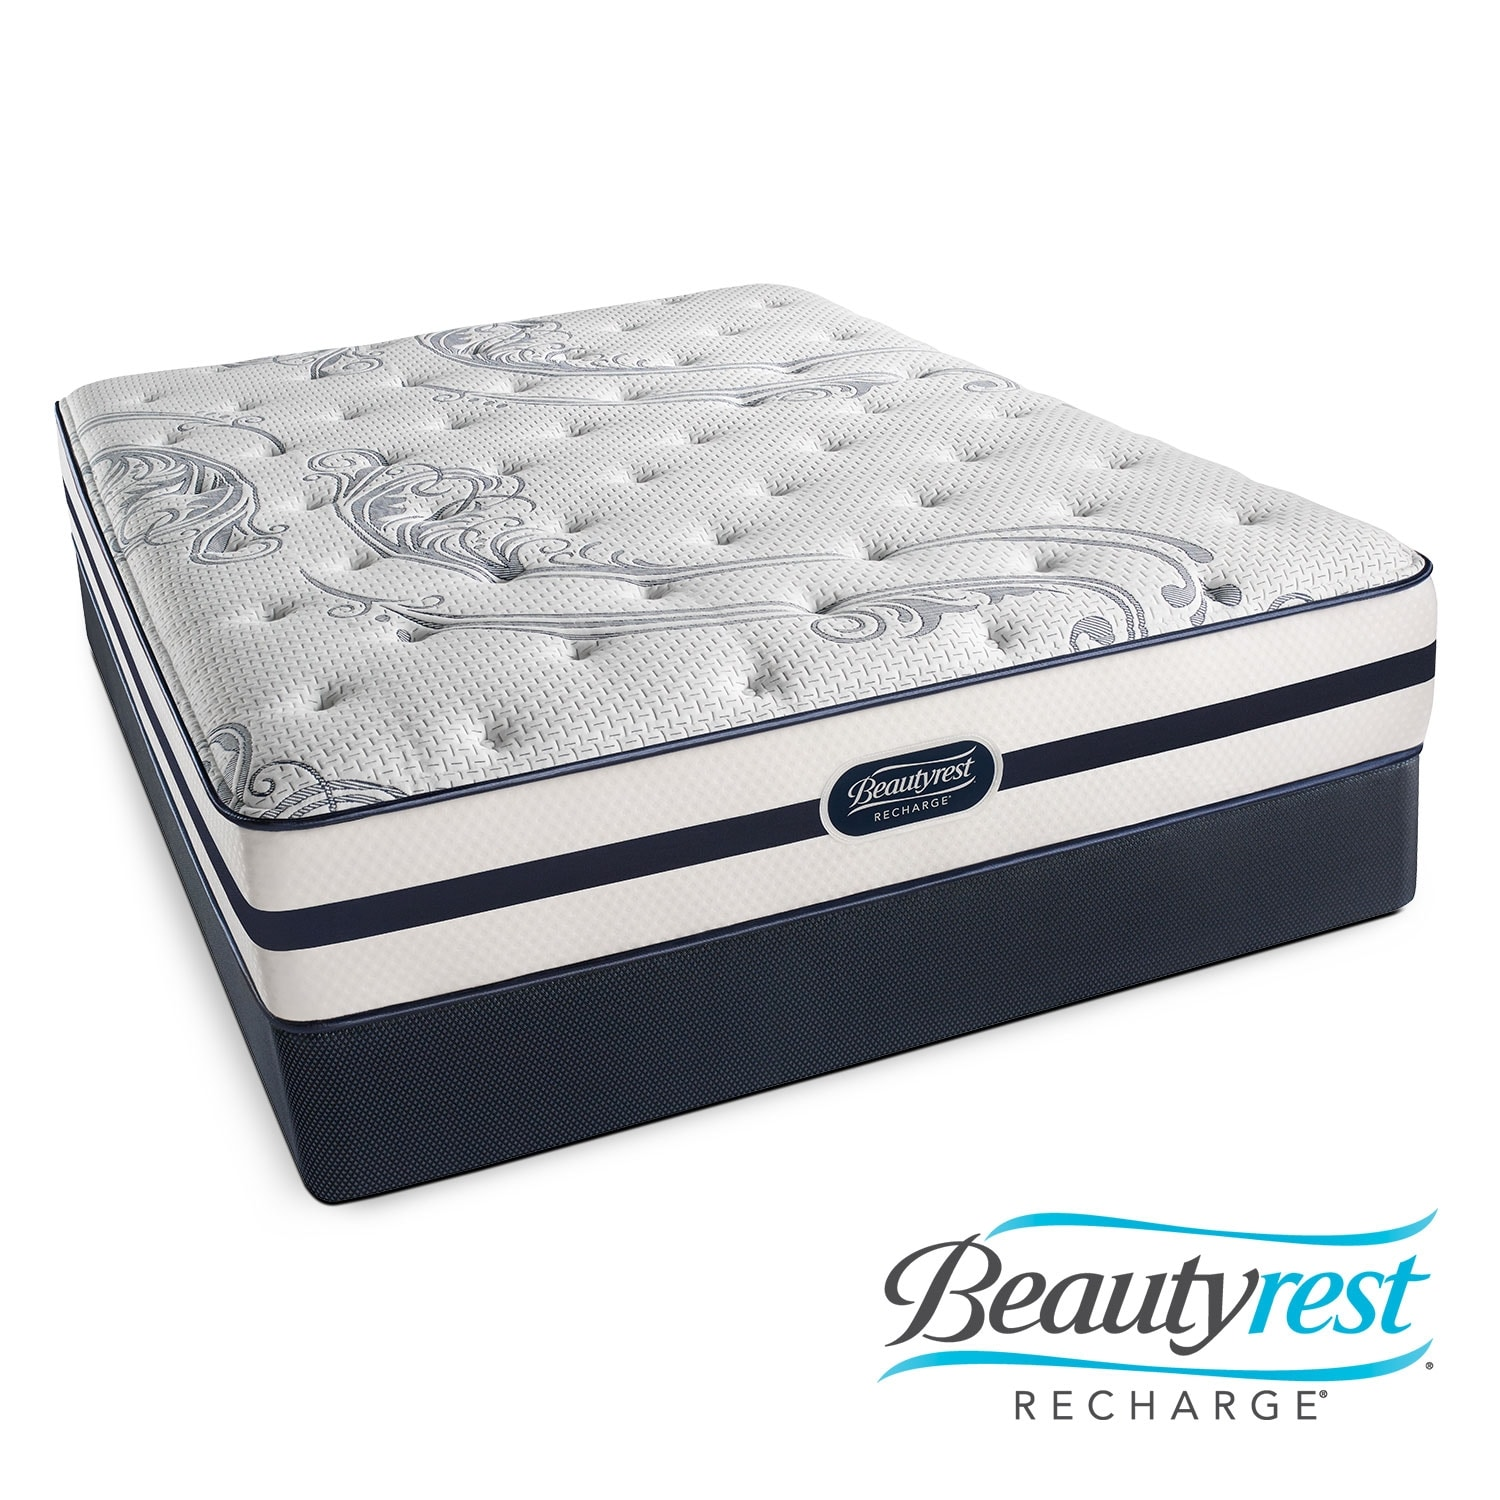 Mattresses and Bedding - Alisa Luxury Firm Queen Mattress/Split Foundation Set